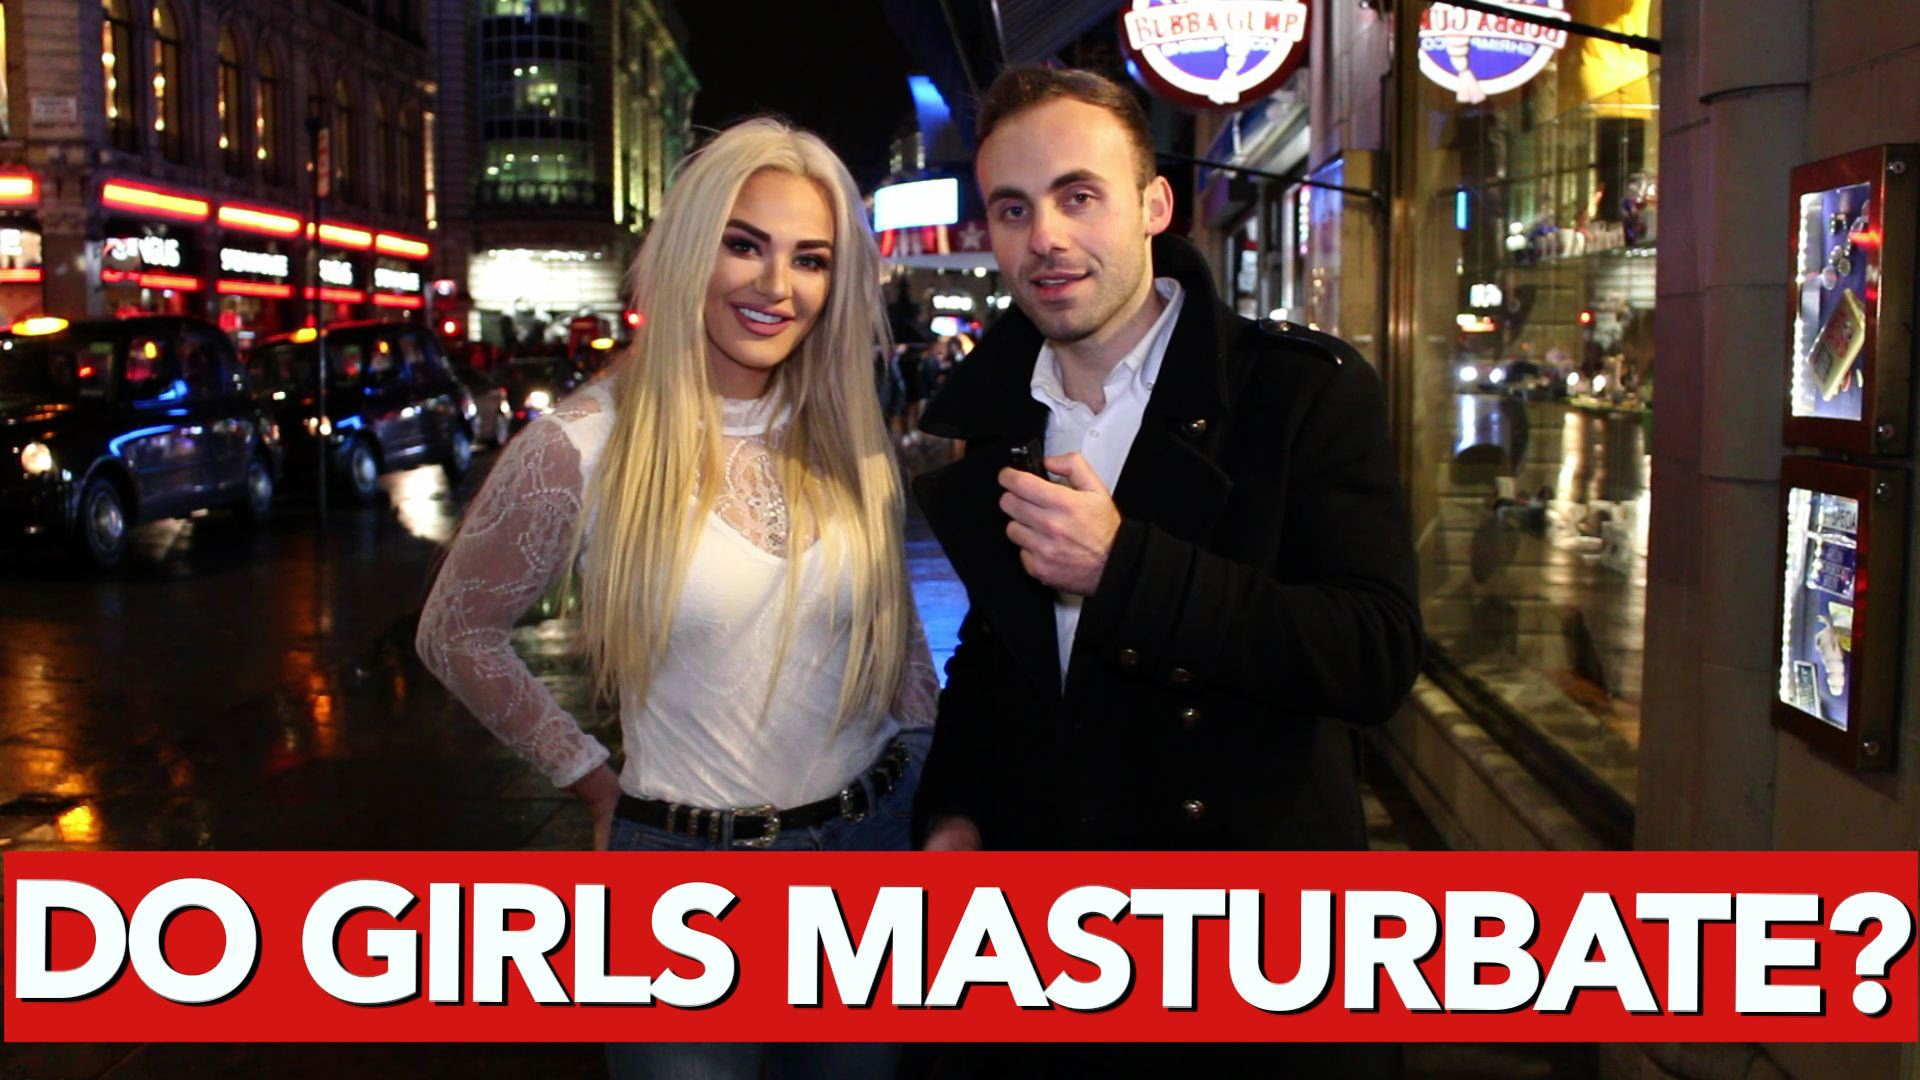 Do girls masturbate